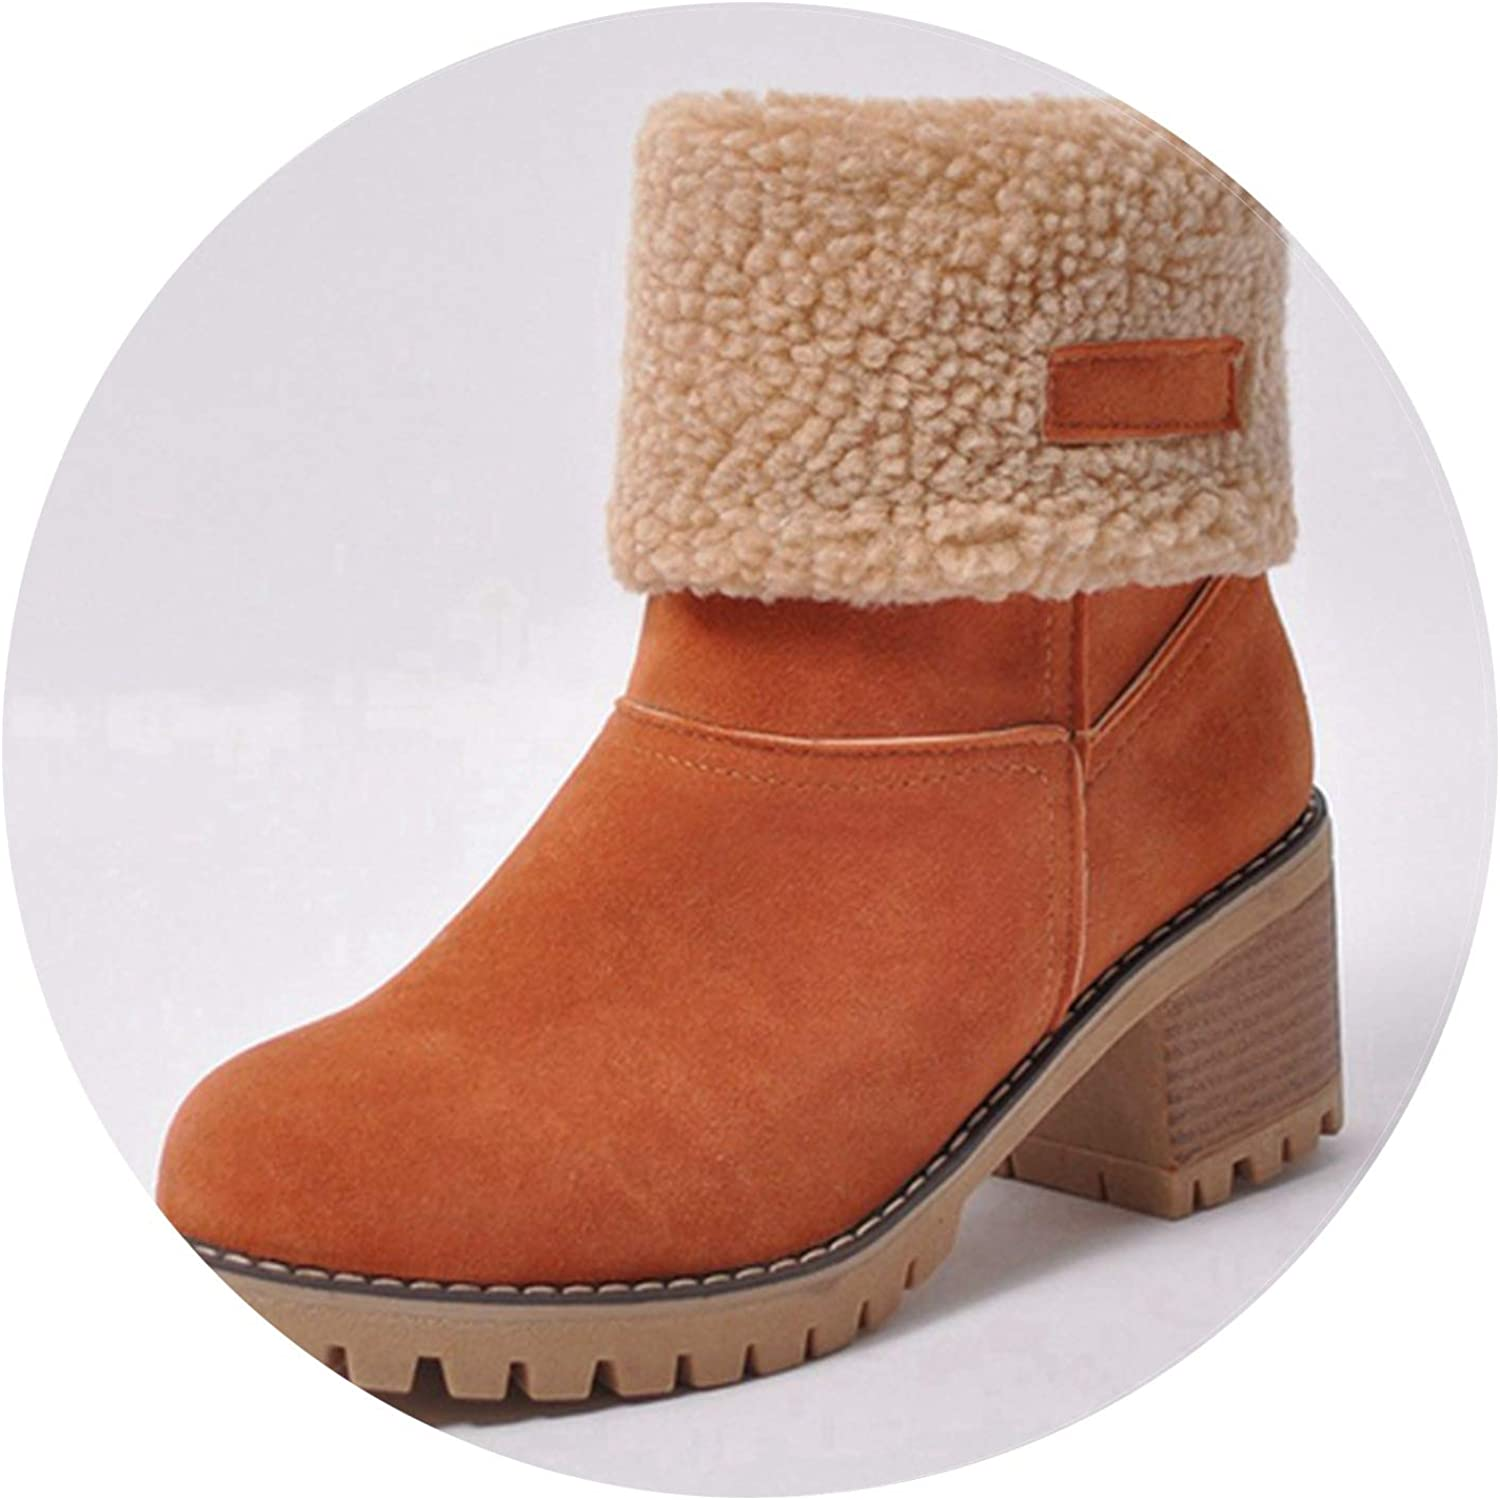 Pretty-sexy-toys Women Boots Female Winter shoes Woman Fur Warm Snow Boots Square Heels Bota Feminina Ankle Boots women,orange,12